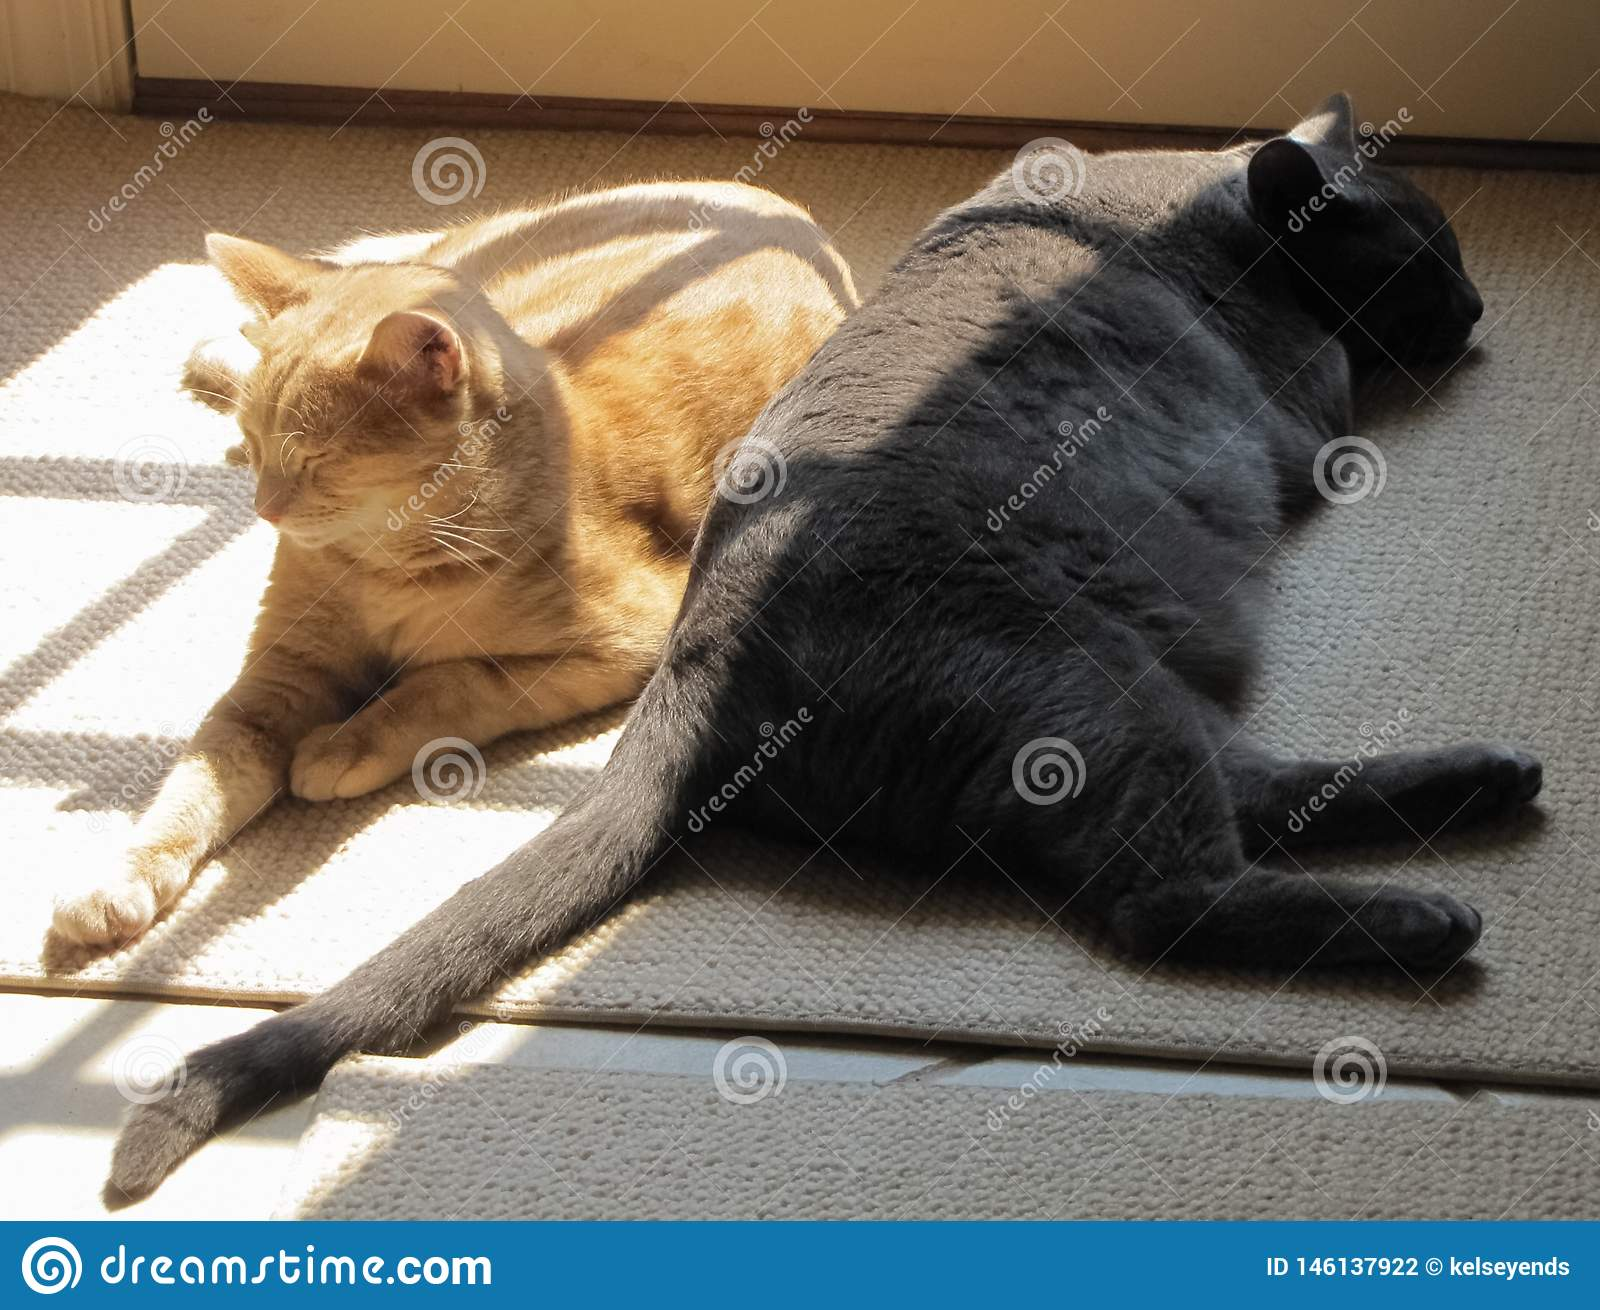 Yin and Yang Cats in the Sun